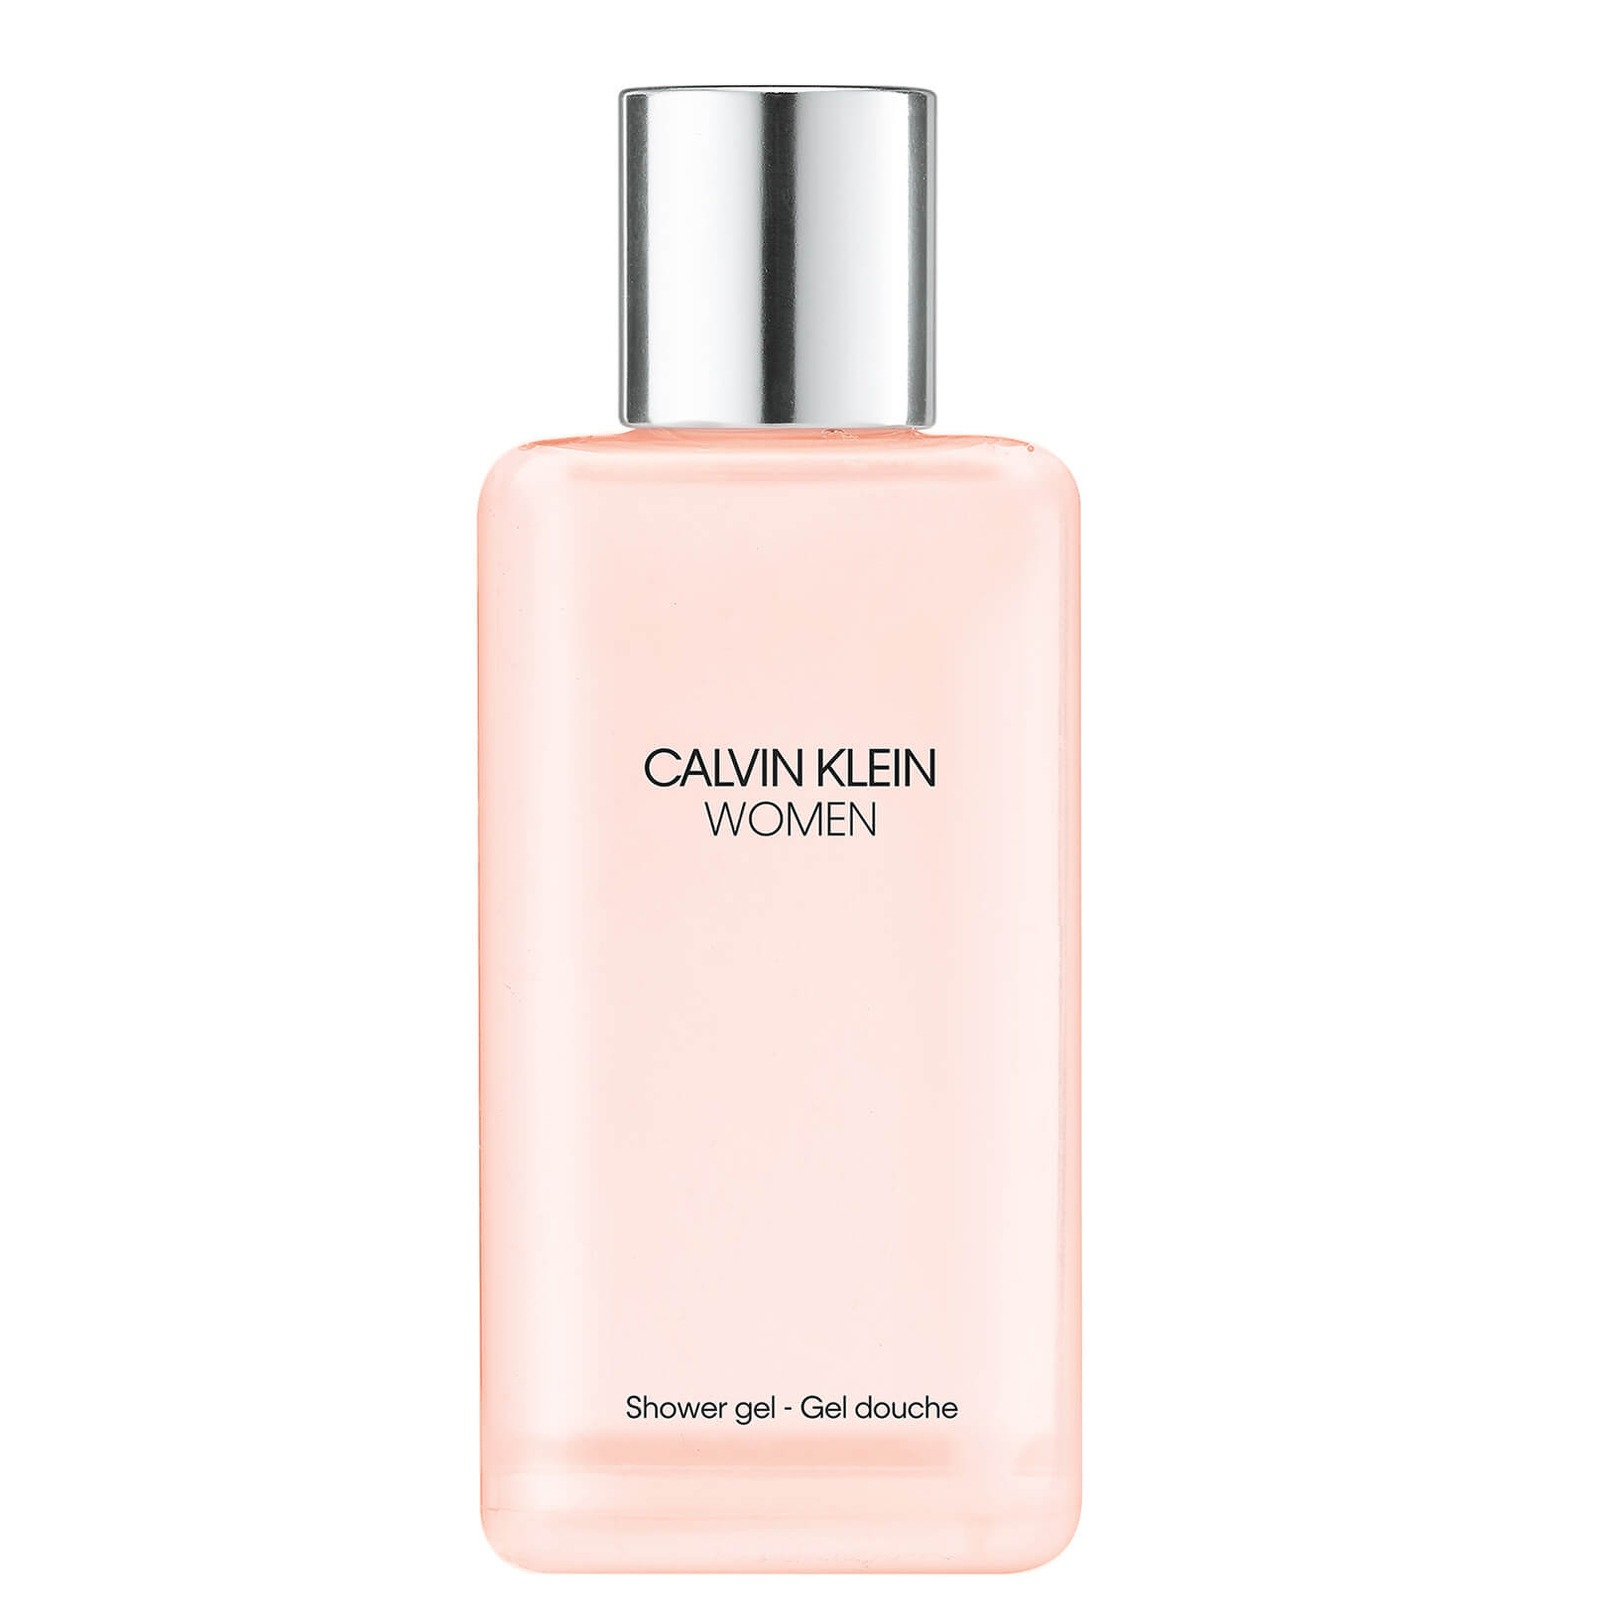 Calvin Klein Women Shower Gel 200ml